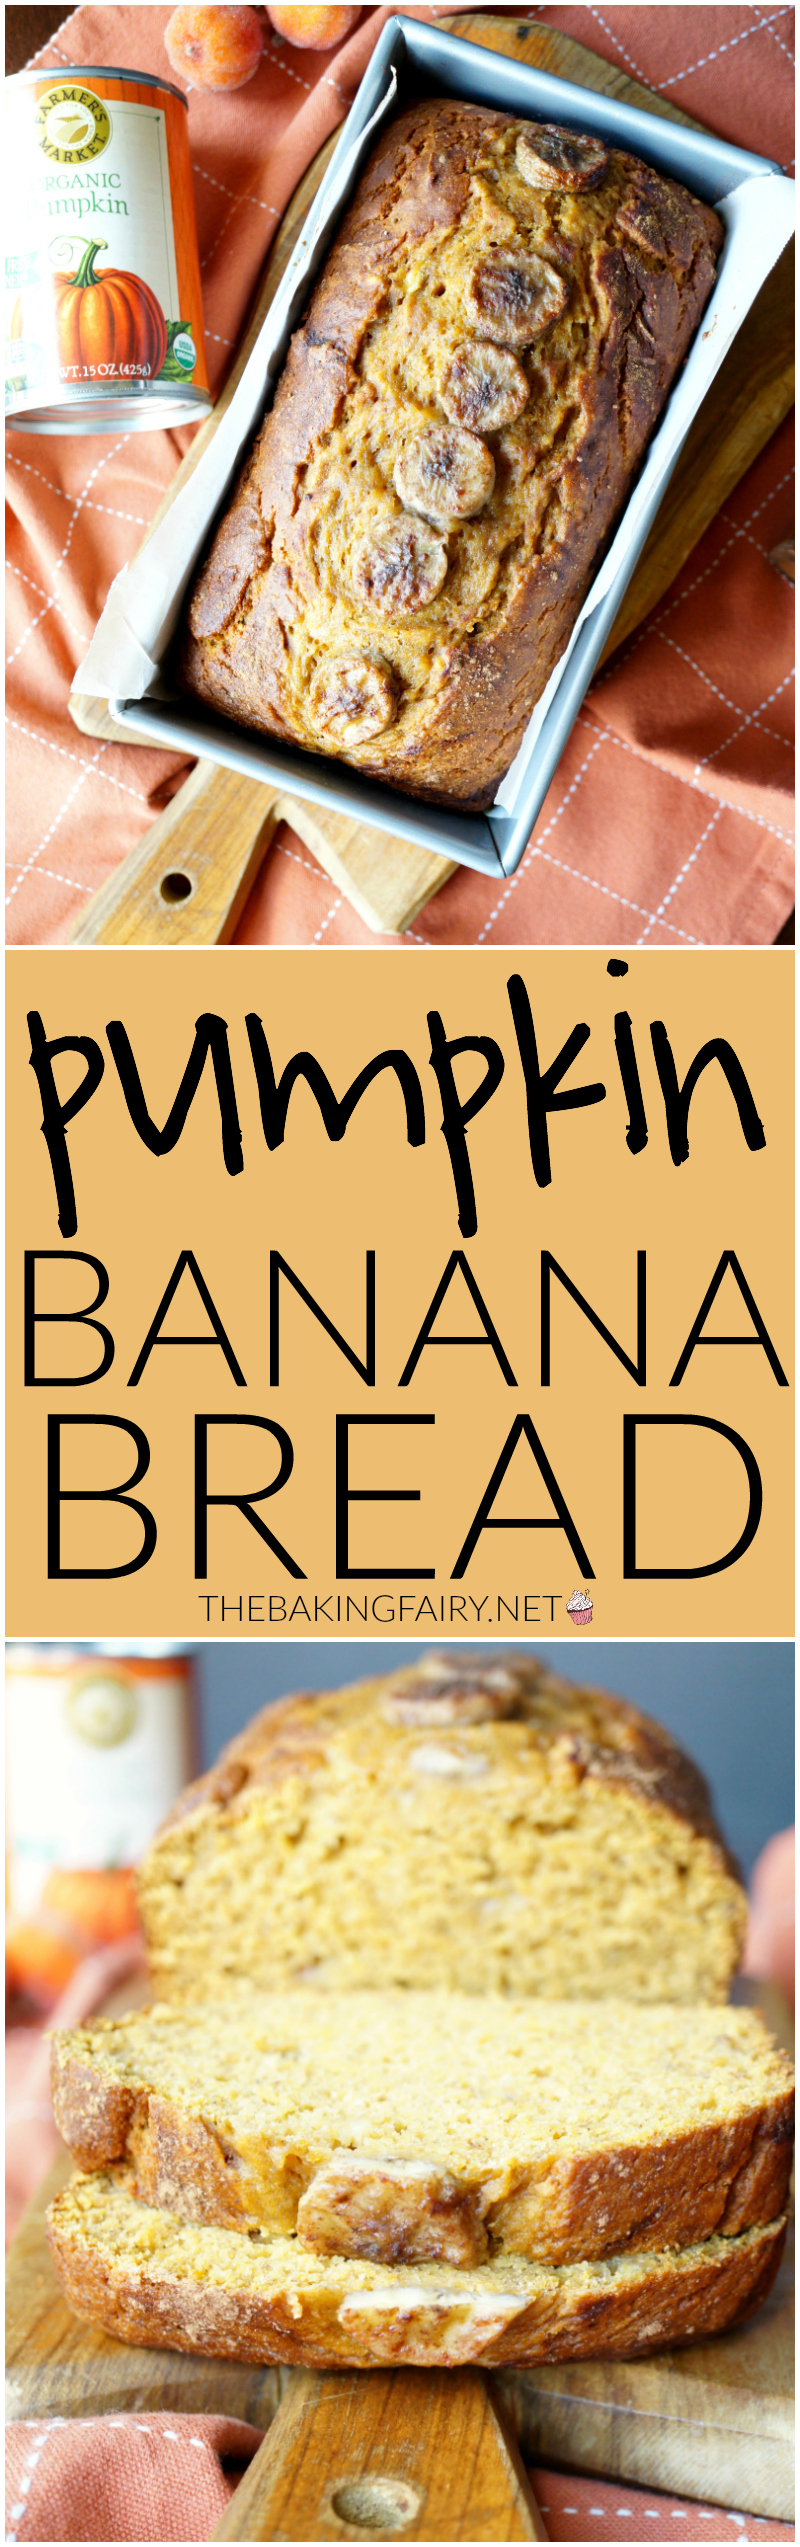 pumpkin banana bread | The Baking Fairy